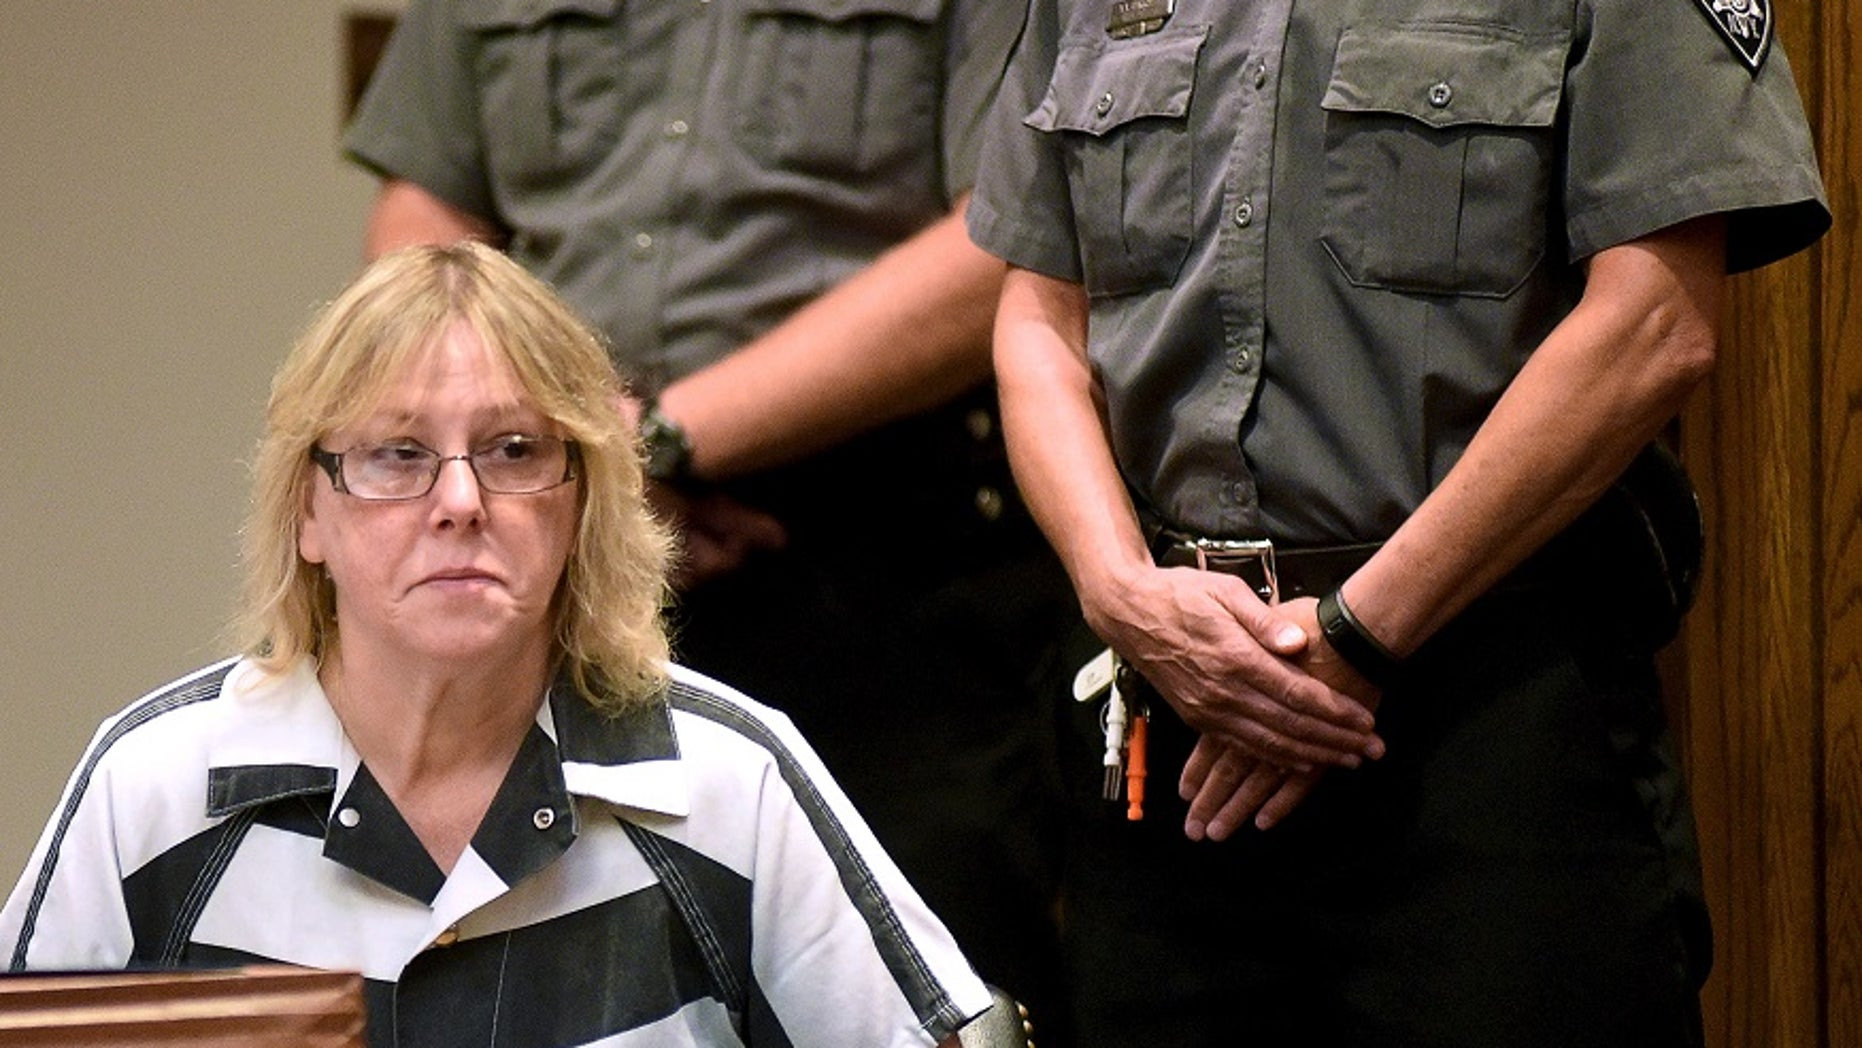 Husband of Joyce Mitchell, who helped 2 NY inmates escape